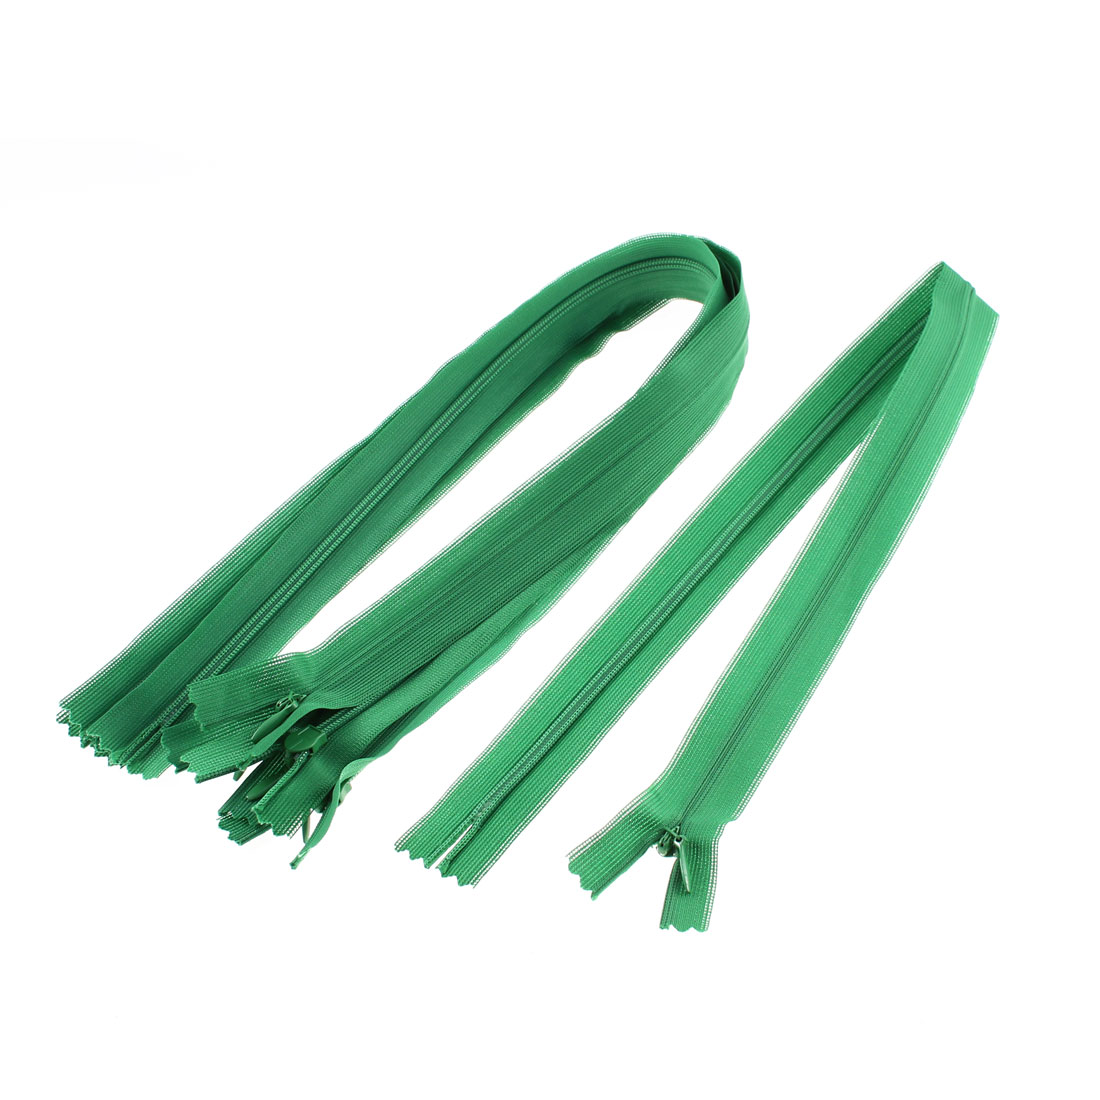 Dress Pants Closed End Nylon Zippers Tailor Sewing Craft Tool Green 50cm 5 Pcs